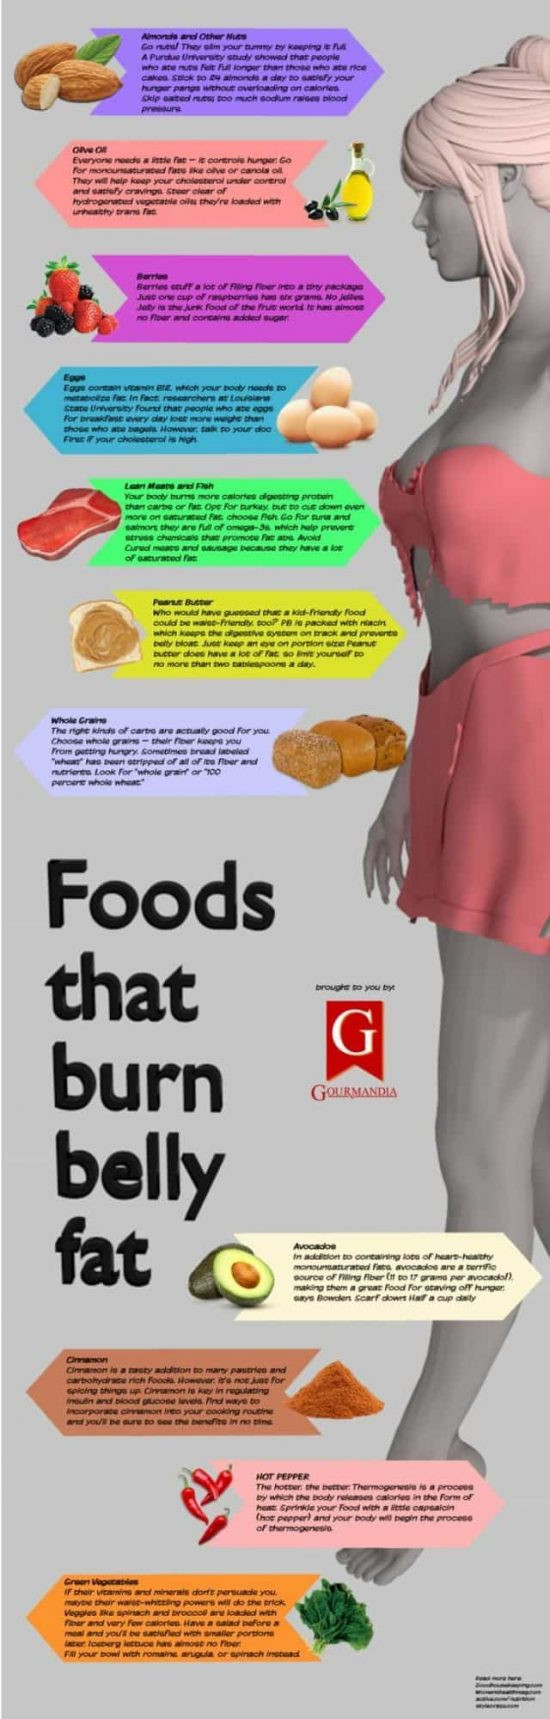 Fat Burning Foods Belly Recipes  Belly Fat Burning Tips And Tricks That Work